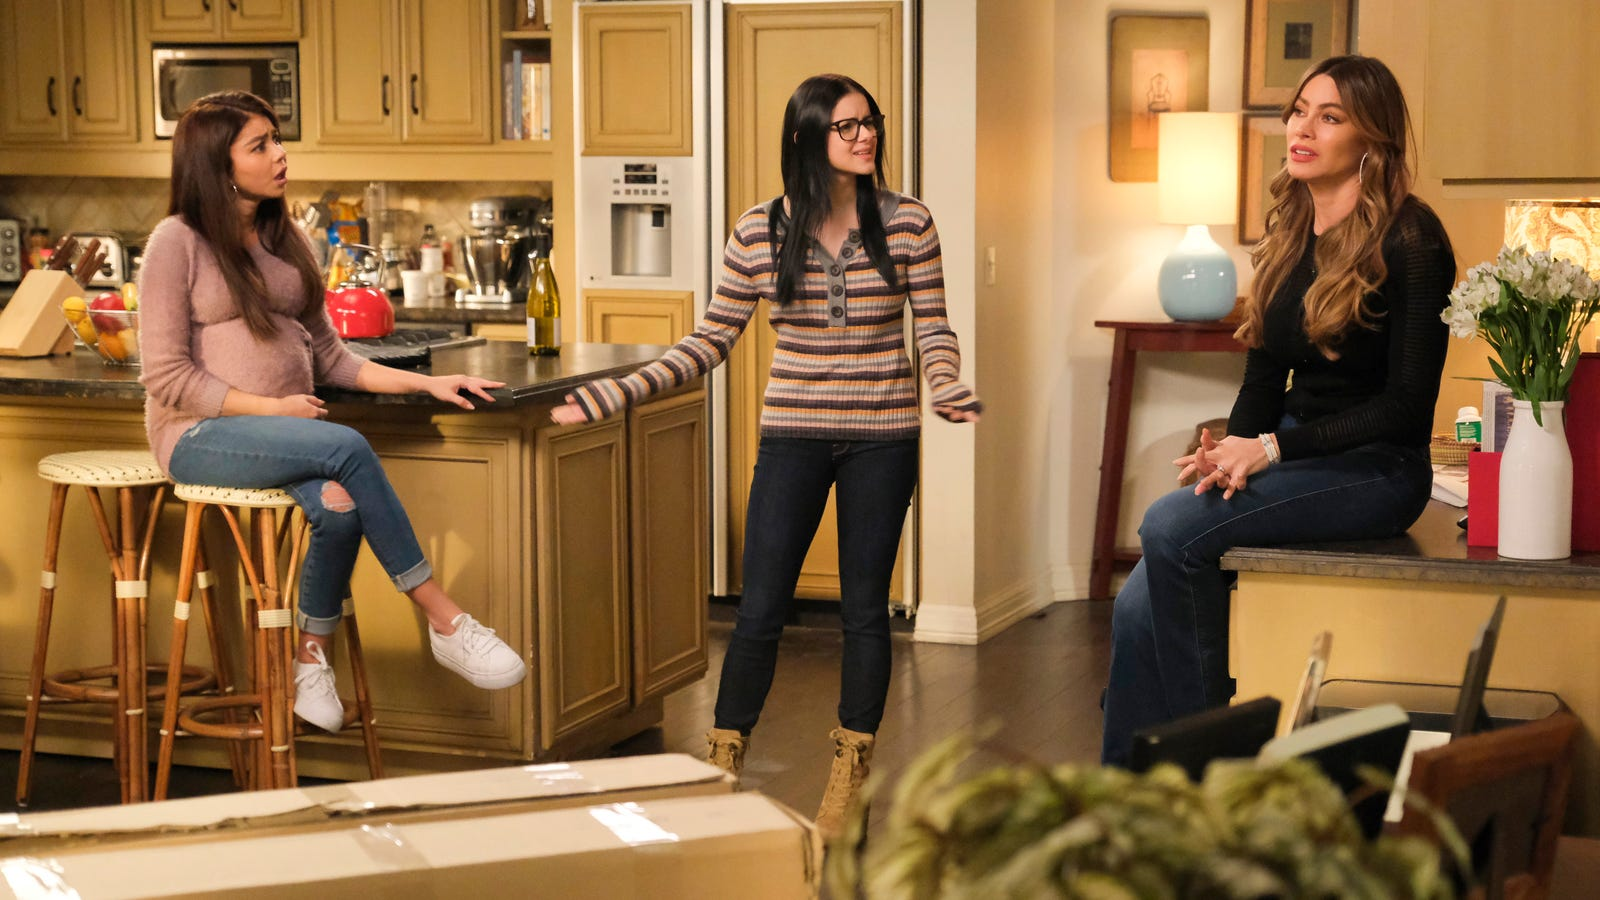 Modern Family splits the family based on gender, to predictably mixed results